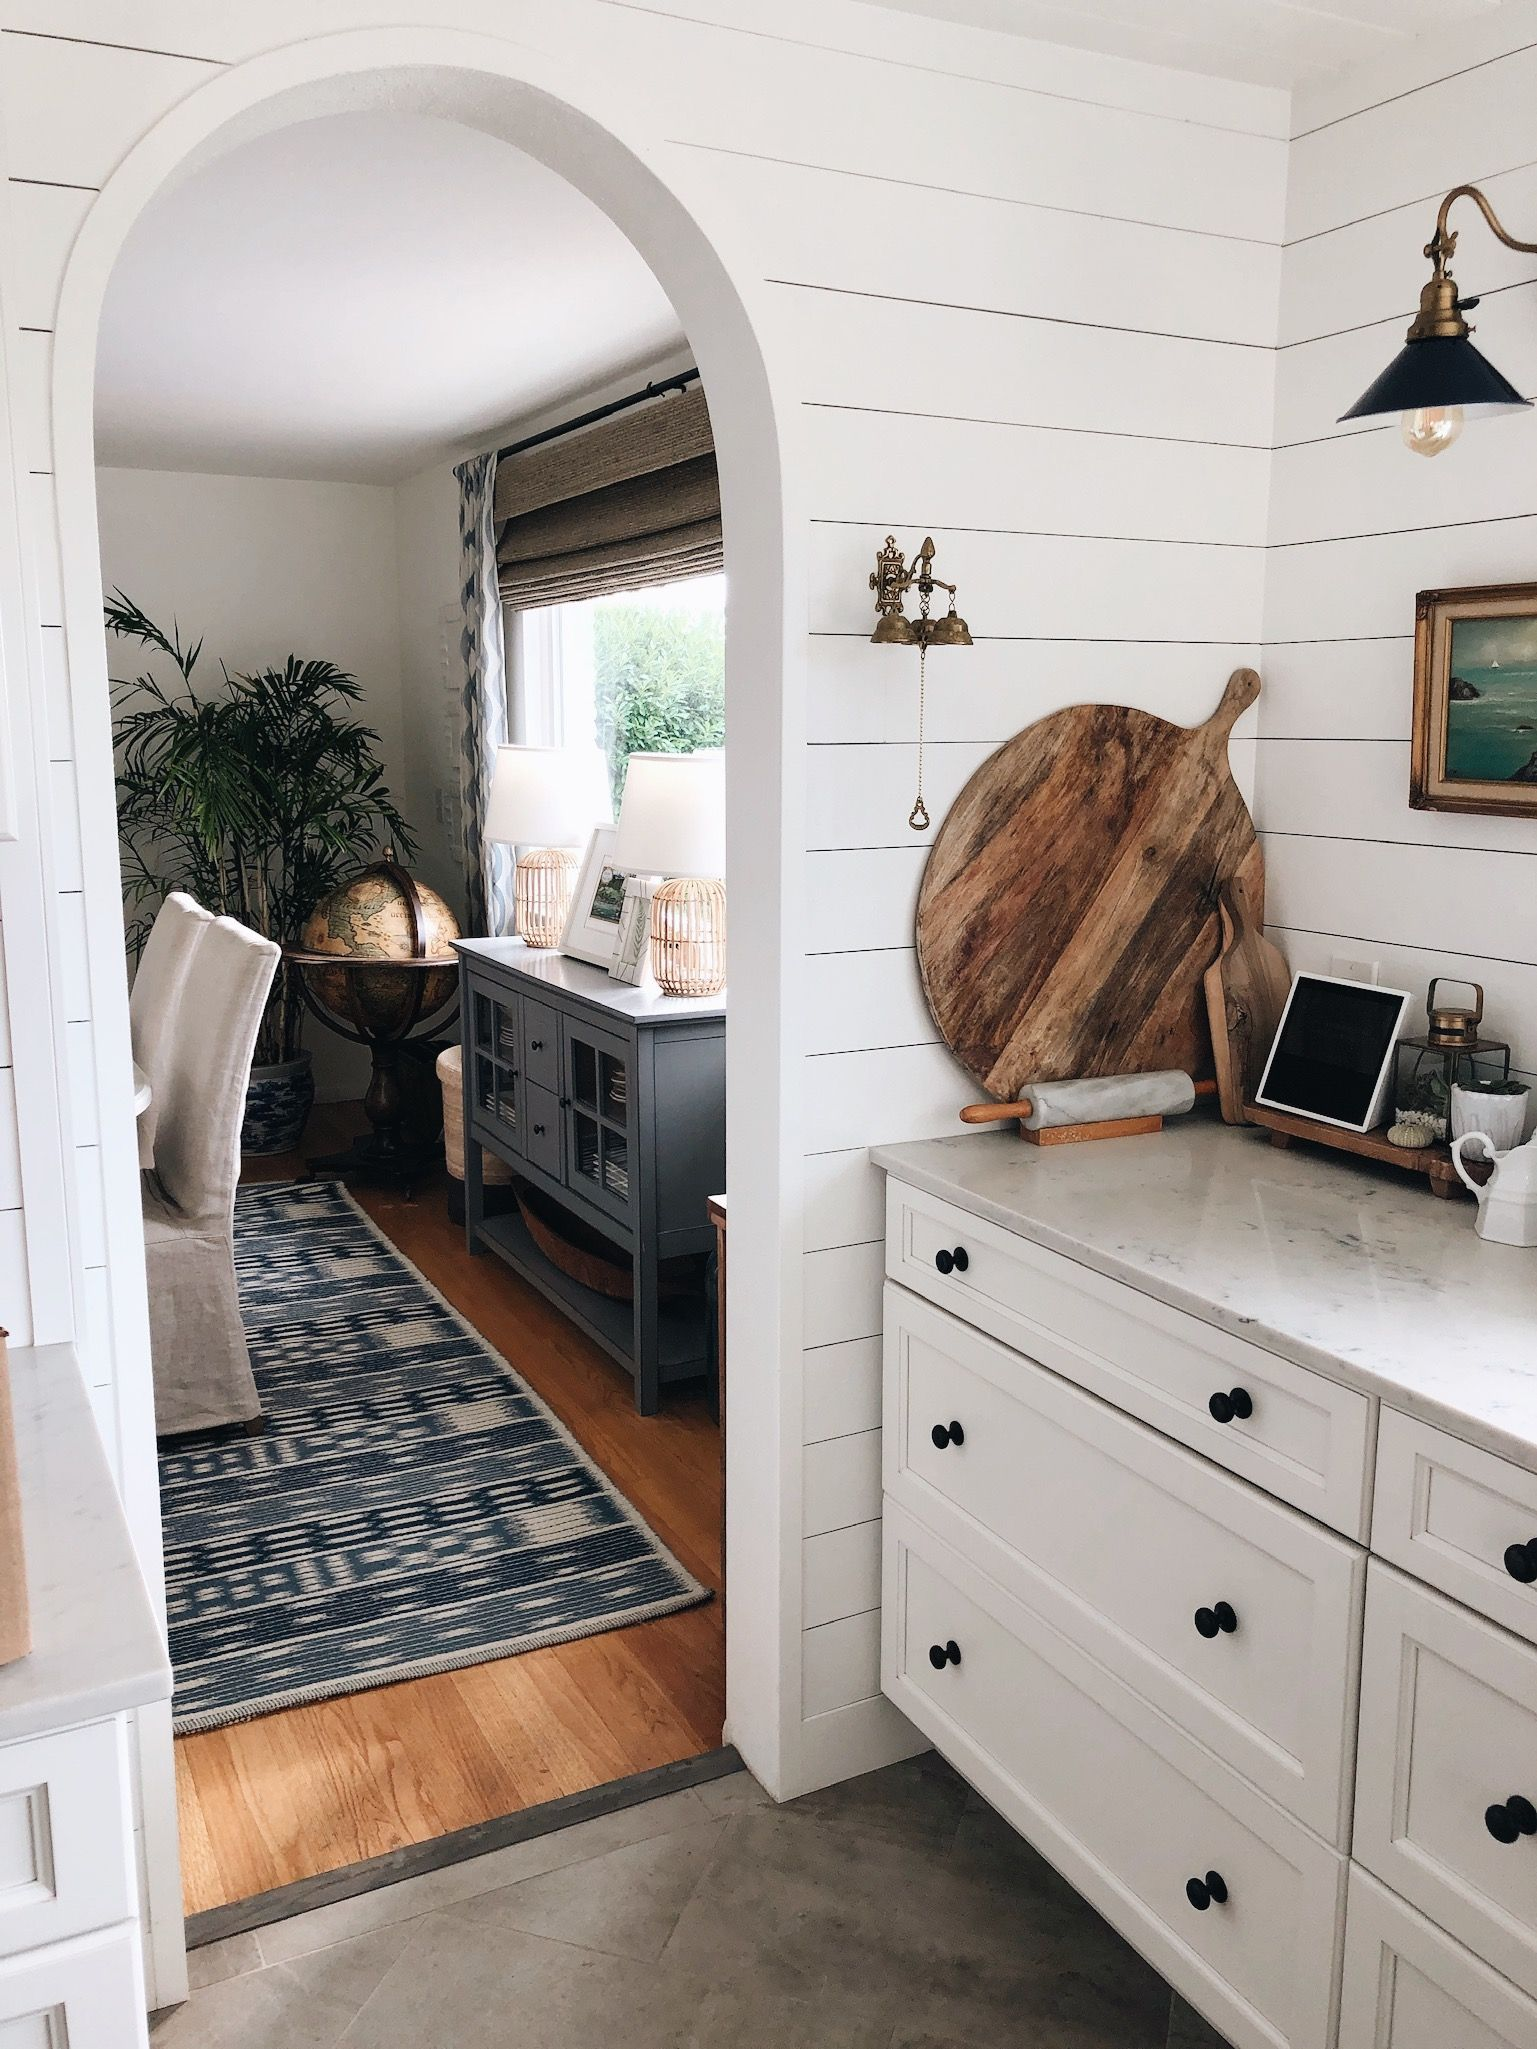 5 ways to bring hygge to your home the inspired room on hygge wall decor id=80179